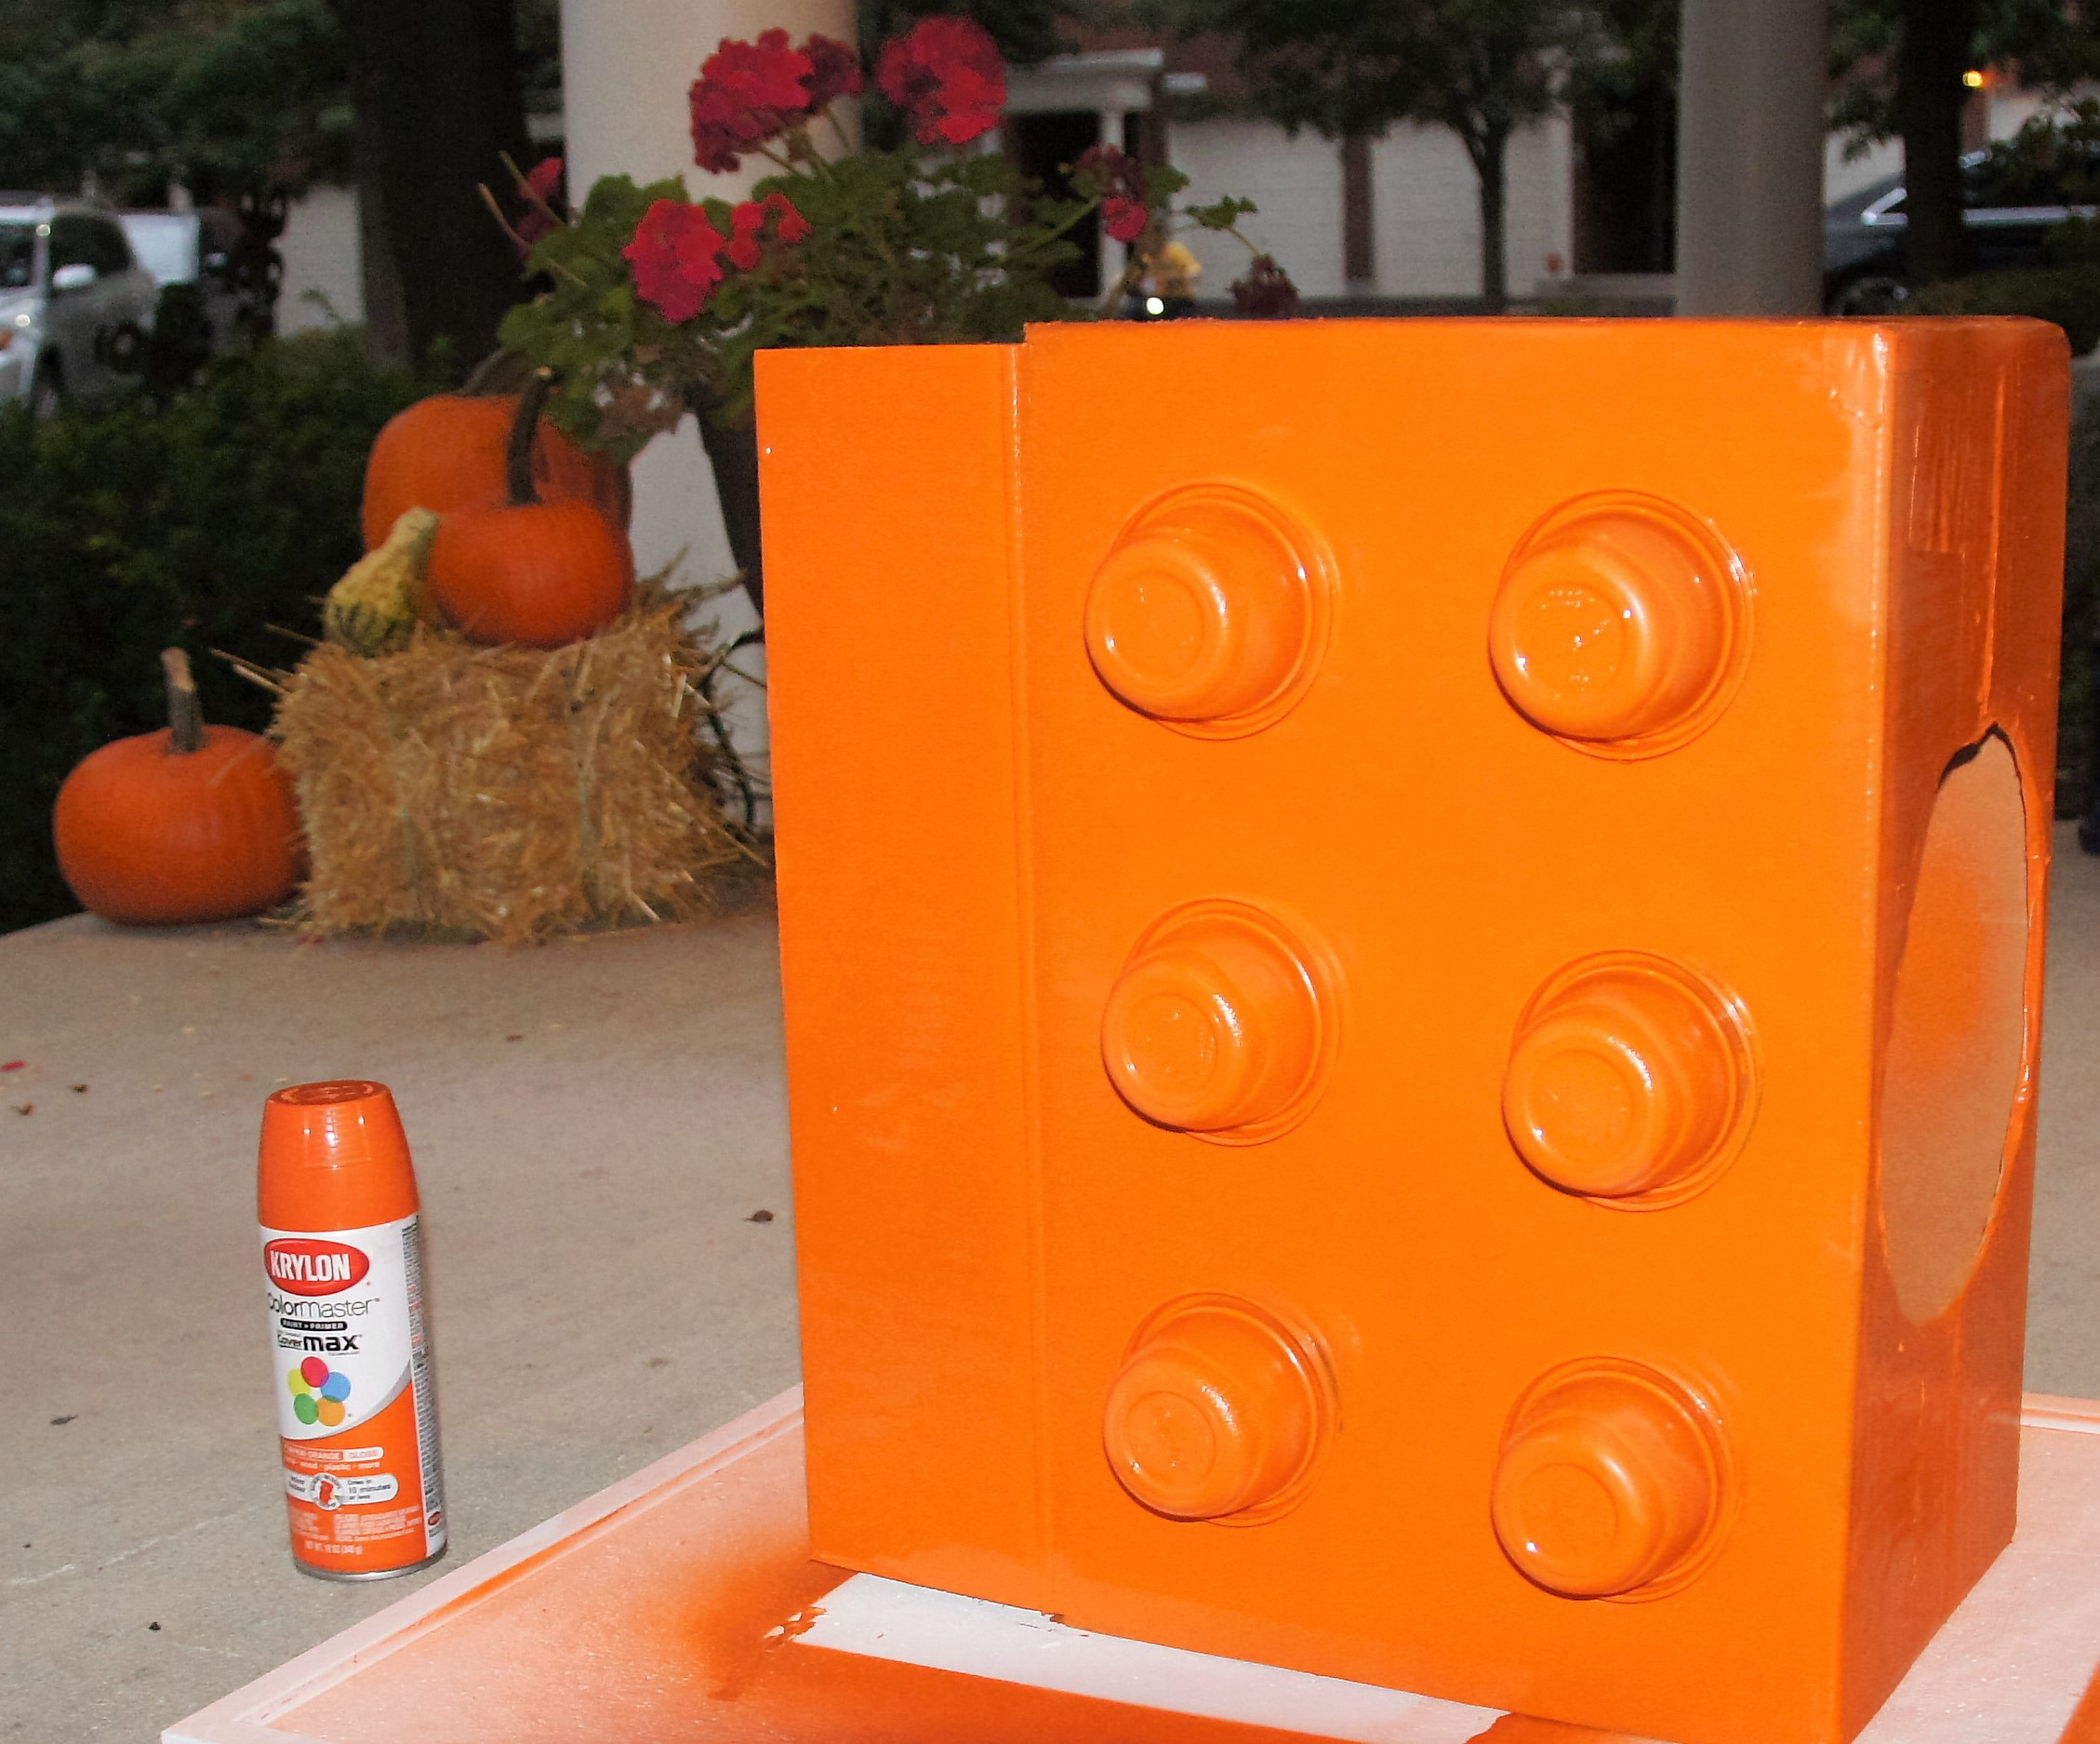 Lego Project: Orange Box Spray Painted